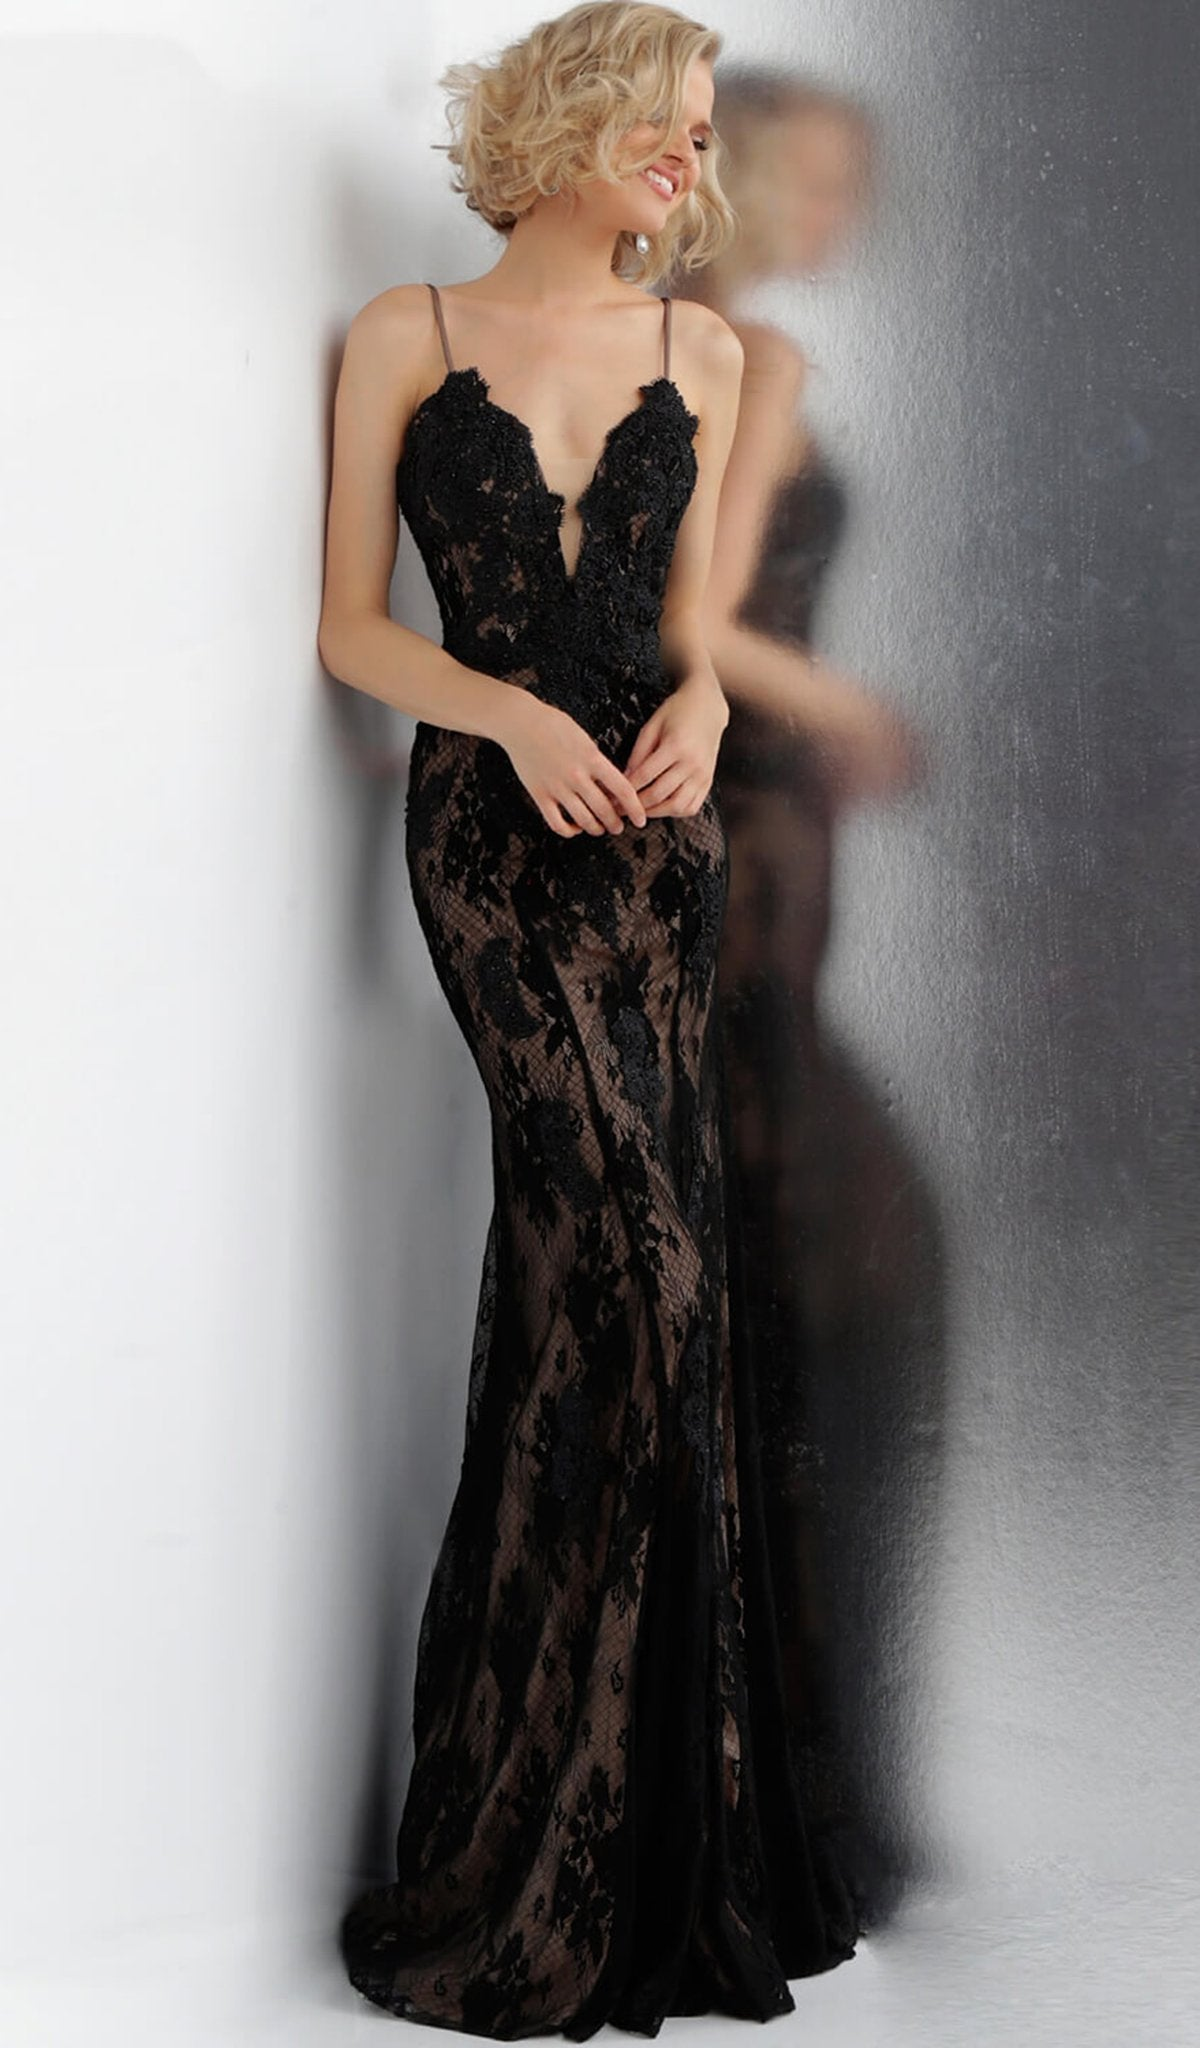 Jovani - Plunging V-Neck Lace Trumpet Dress With Train In Black